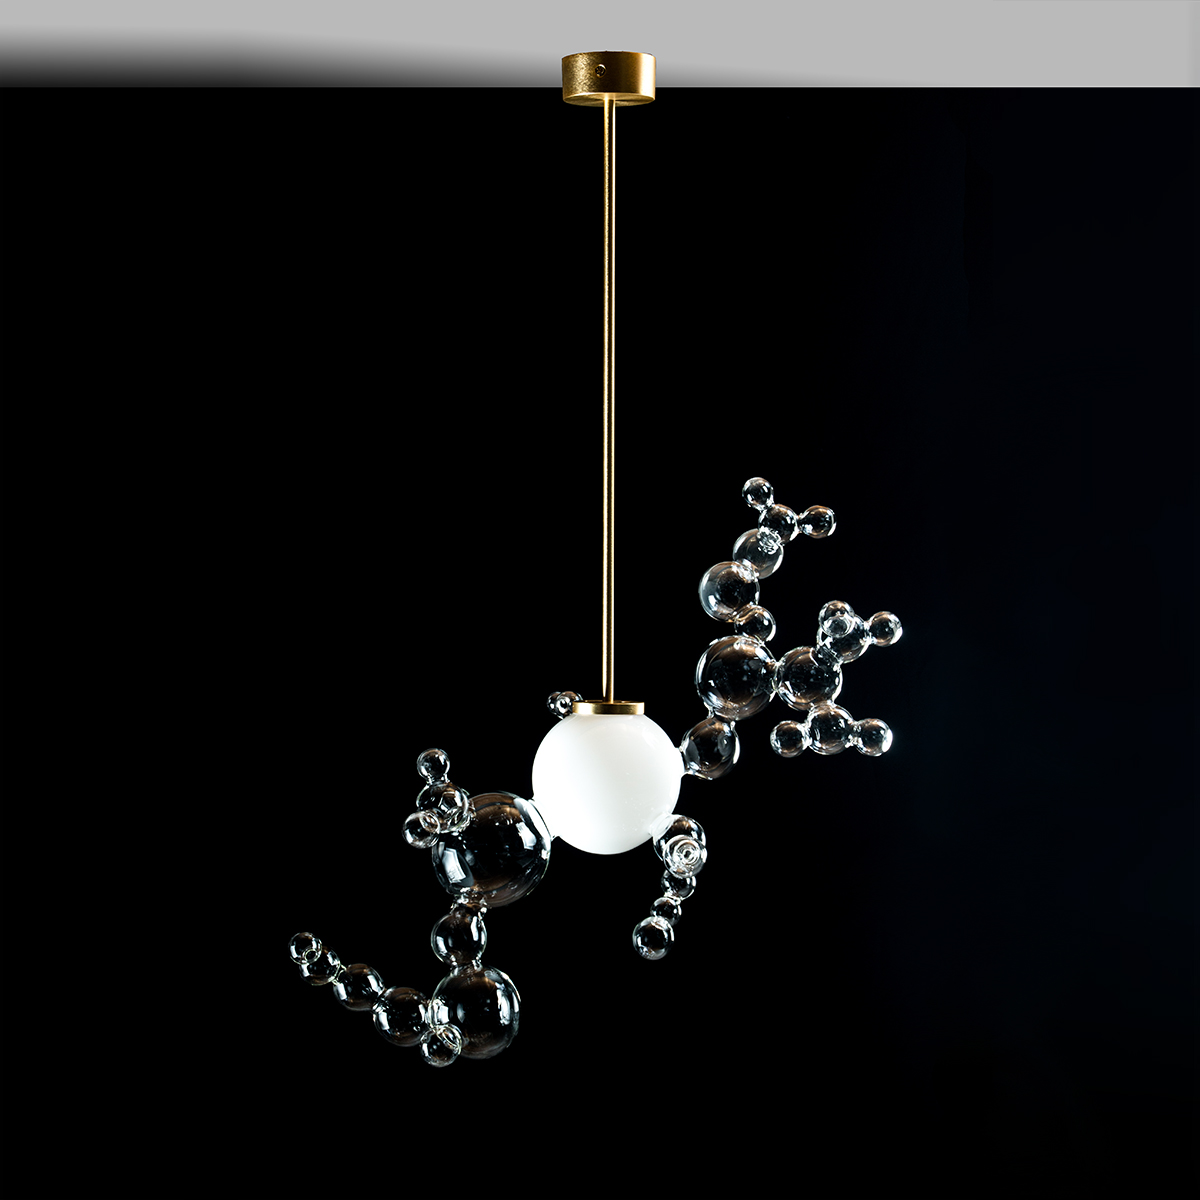 Handmade glass and gold chandelier